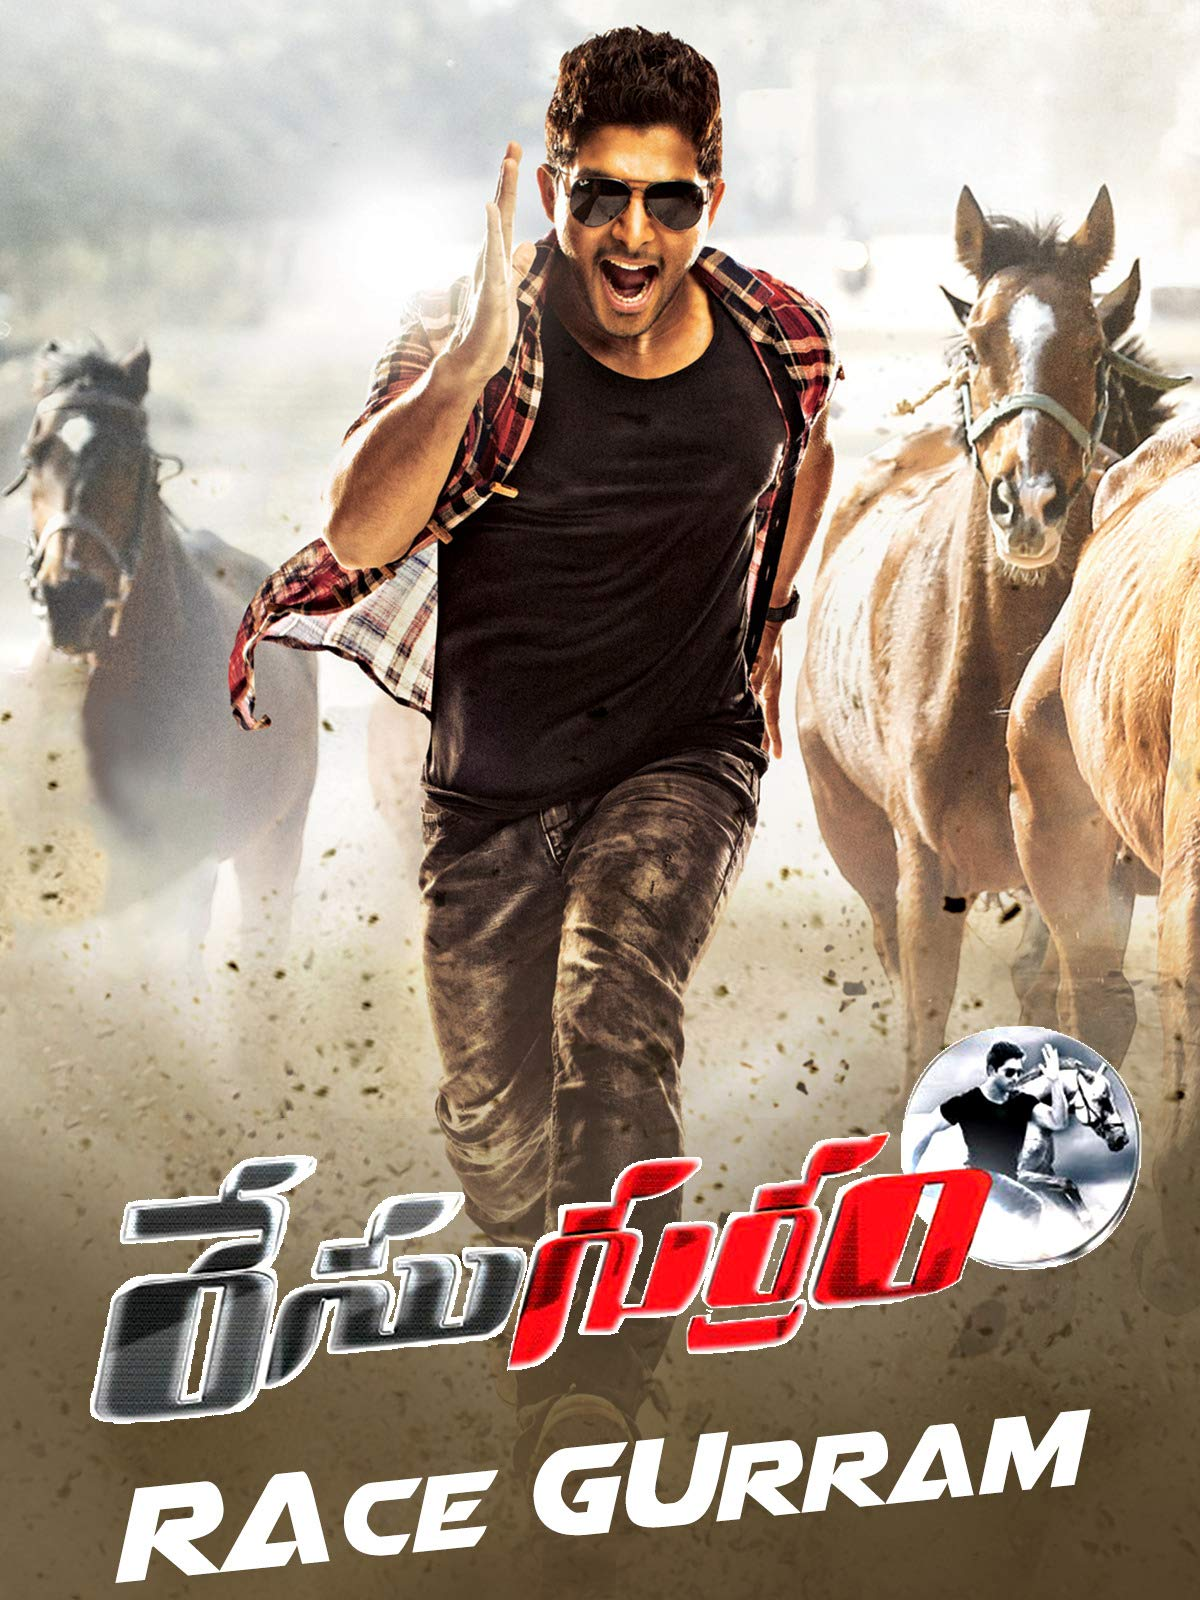 race gurram full movie in hindi dubbed free download 720p